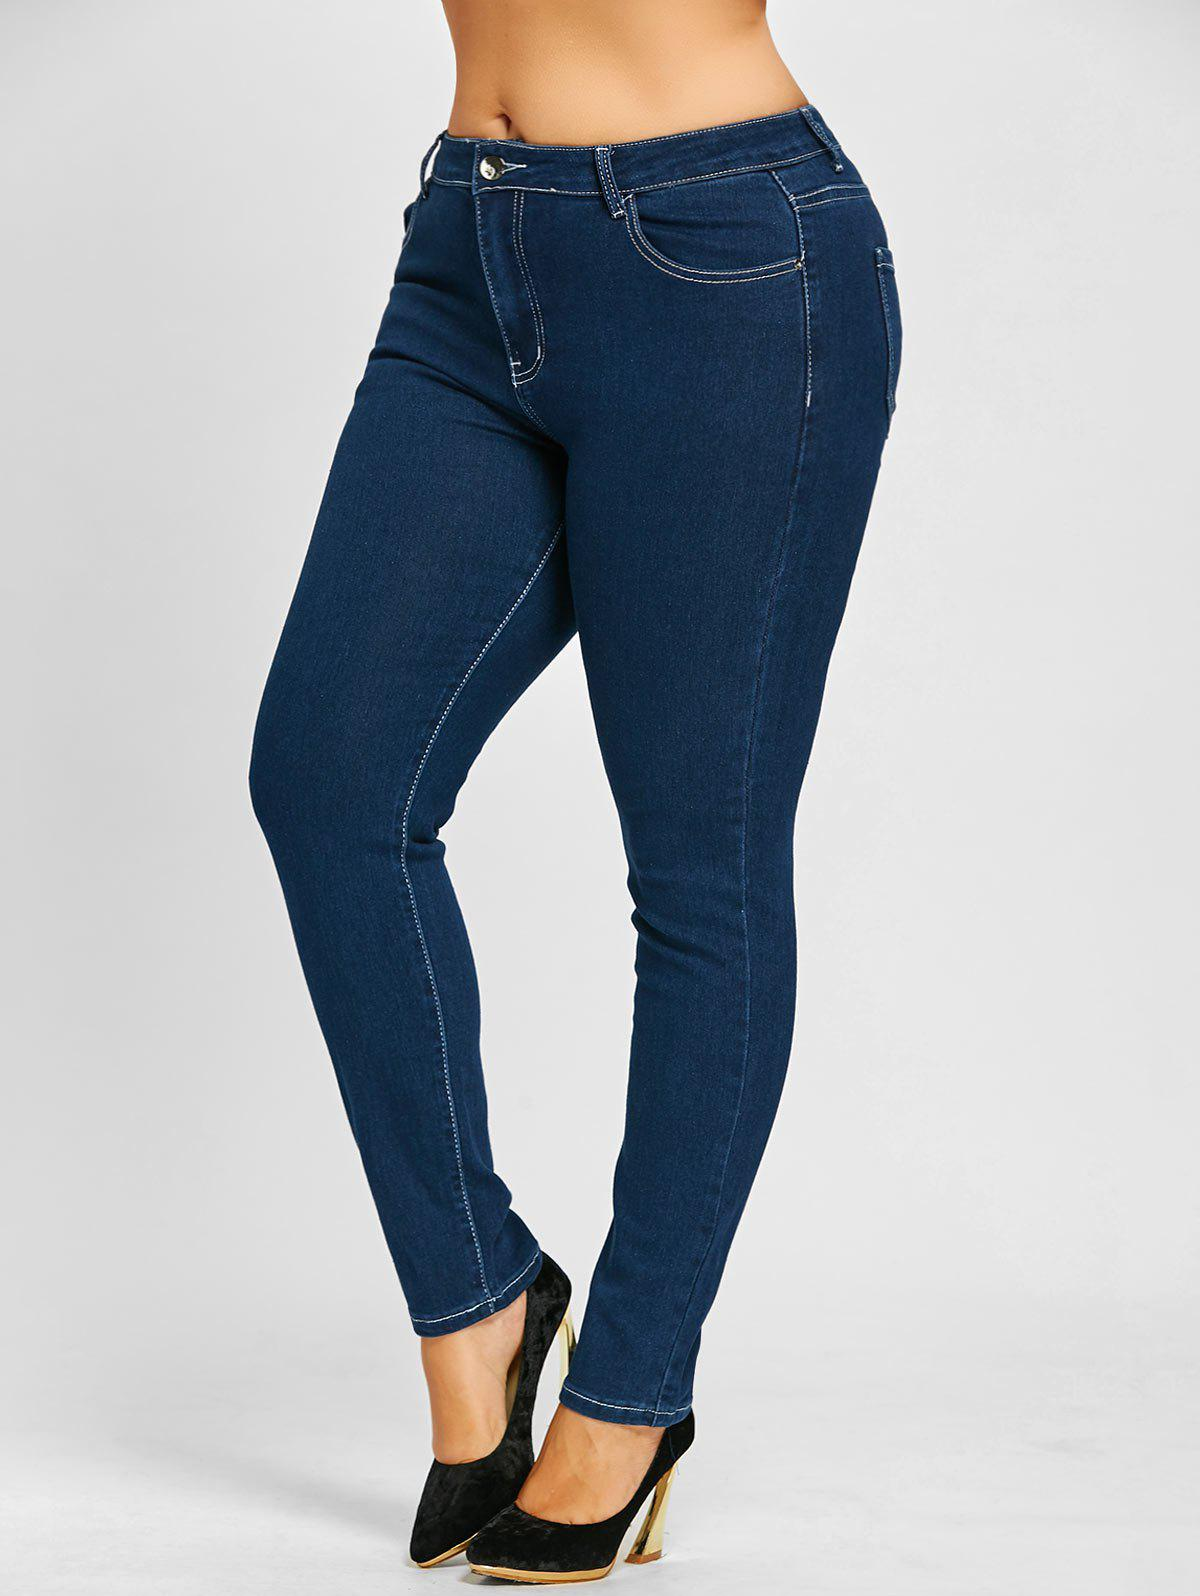 New Plus Size Zip Up High Waist Stretch Jeans